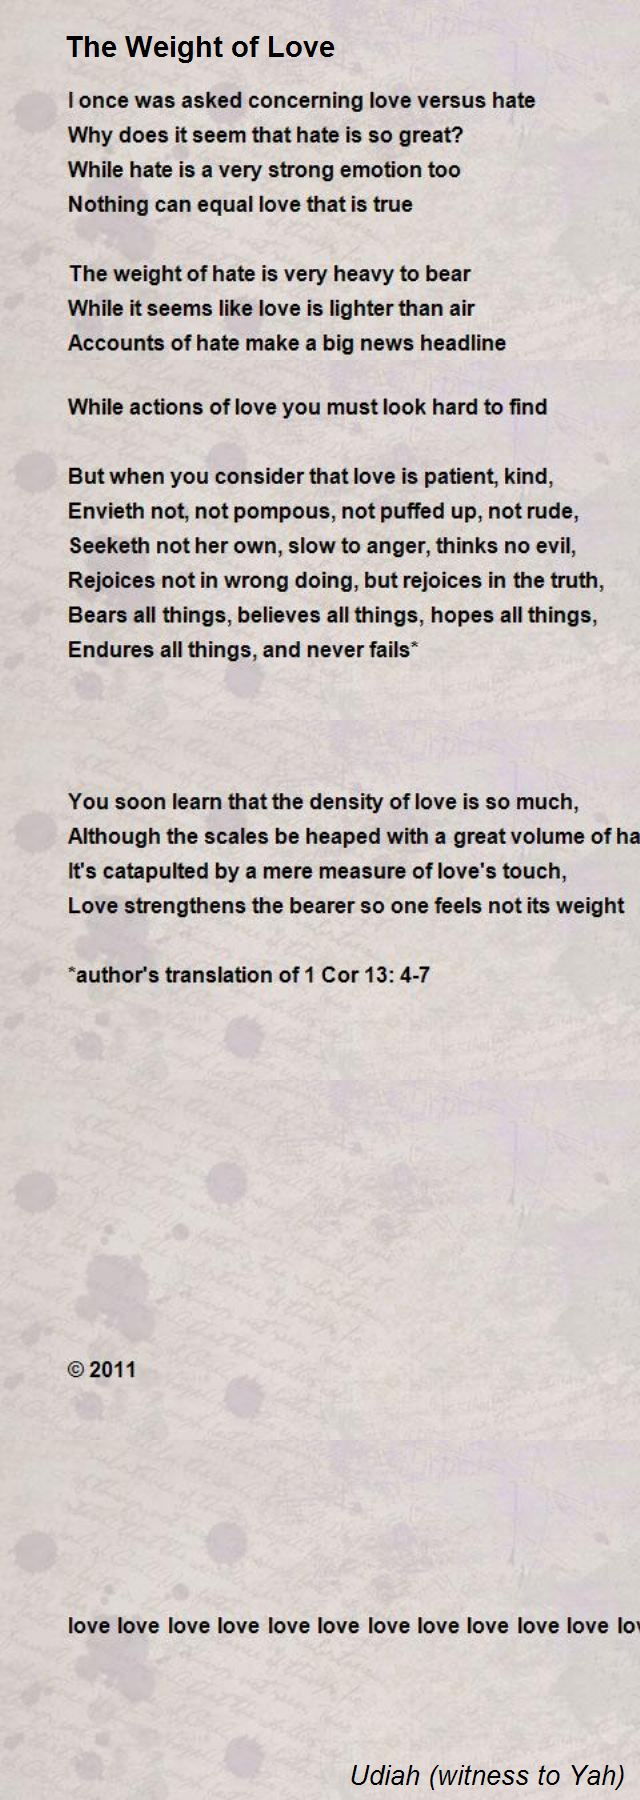 The Weight Of Love Love Love Love Love Poem By Udiah